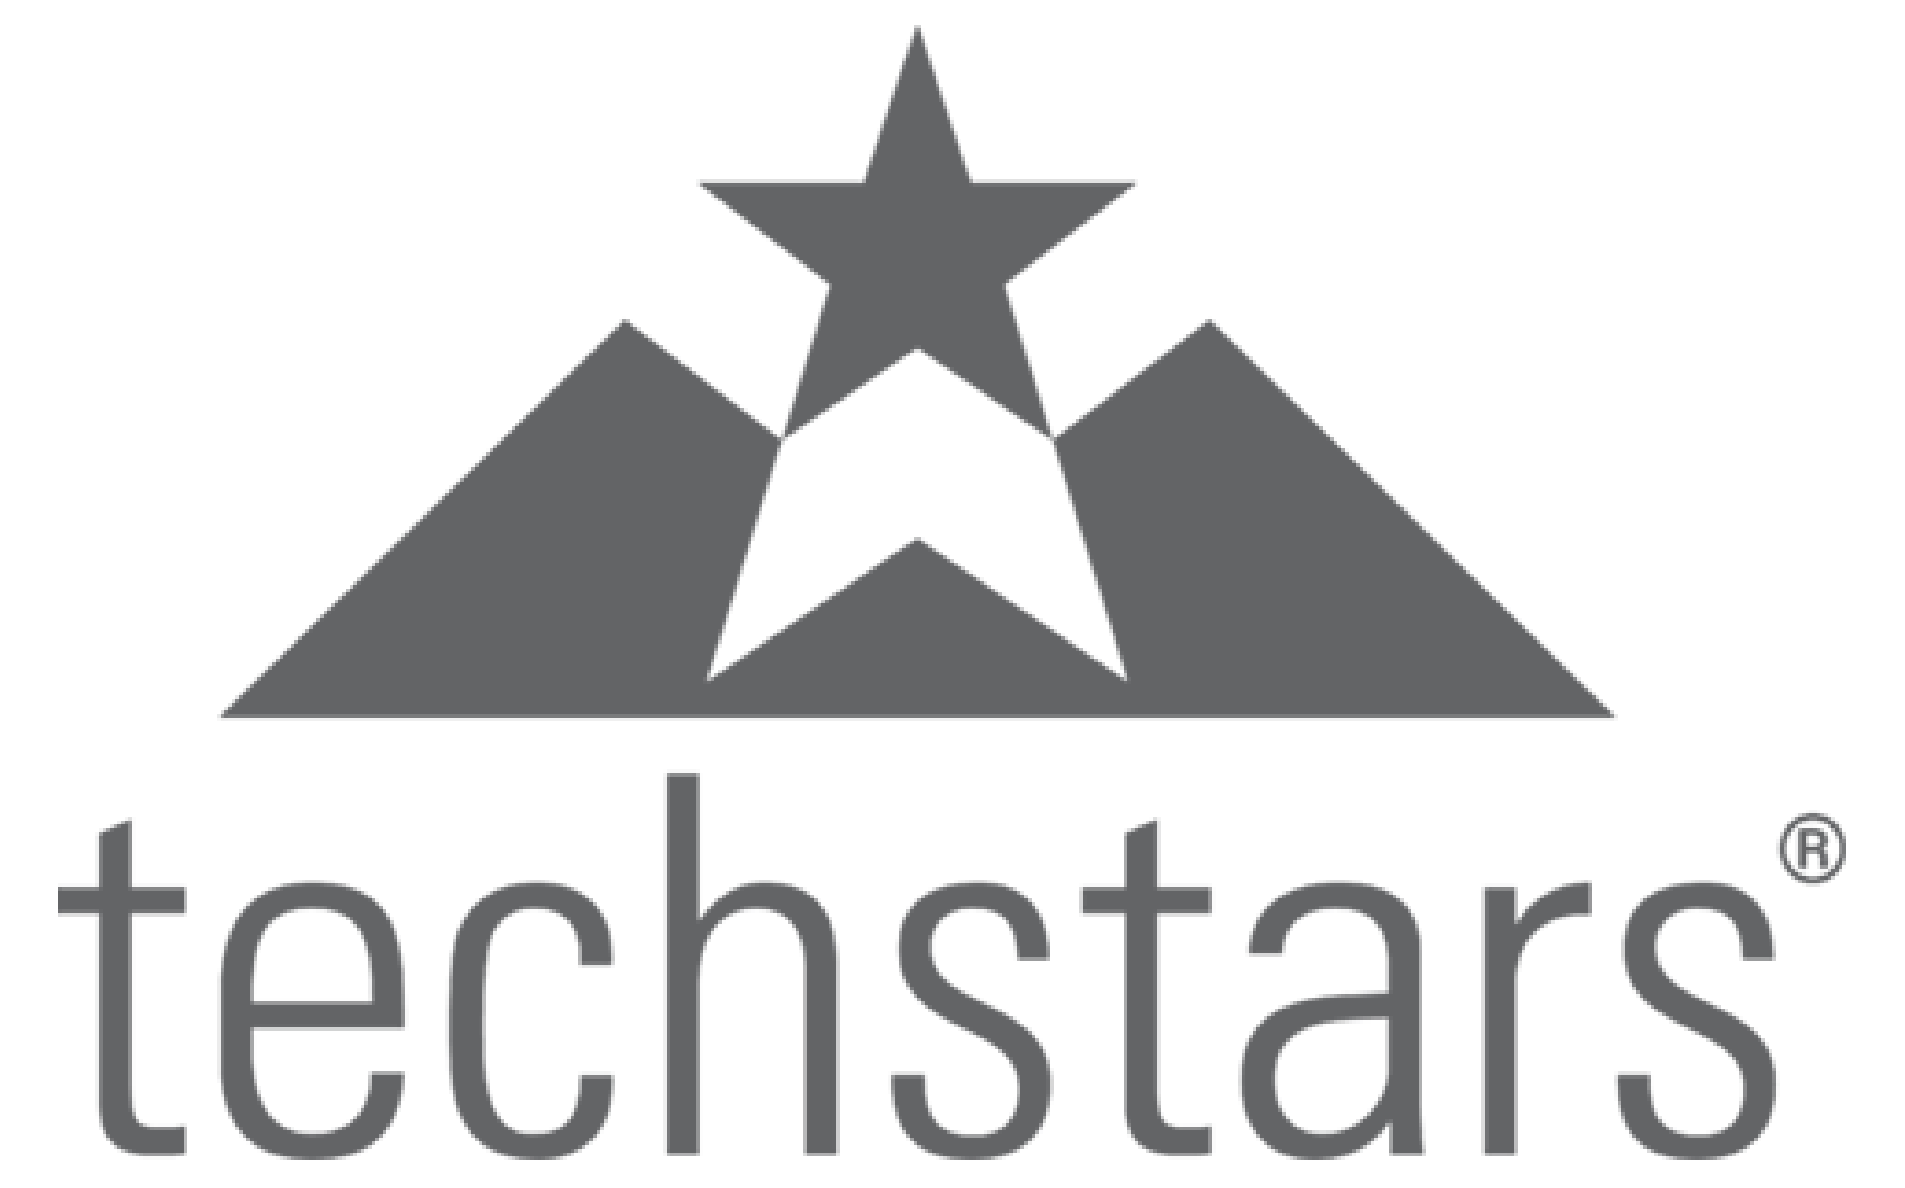 techstars_cropped